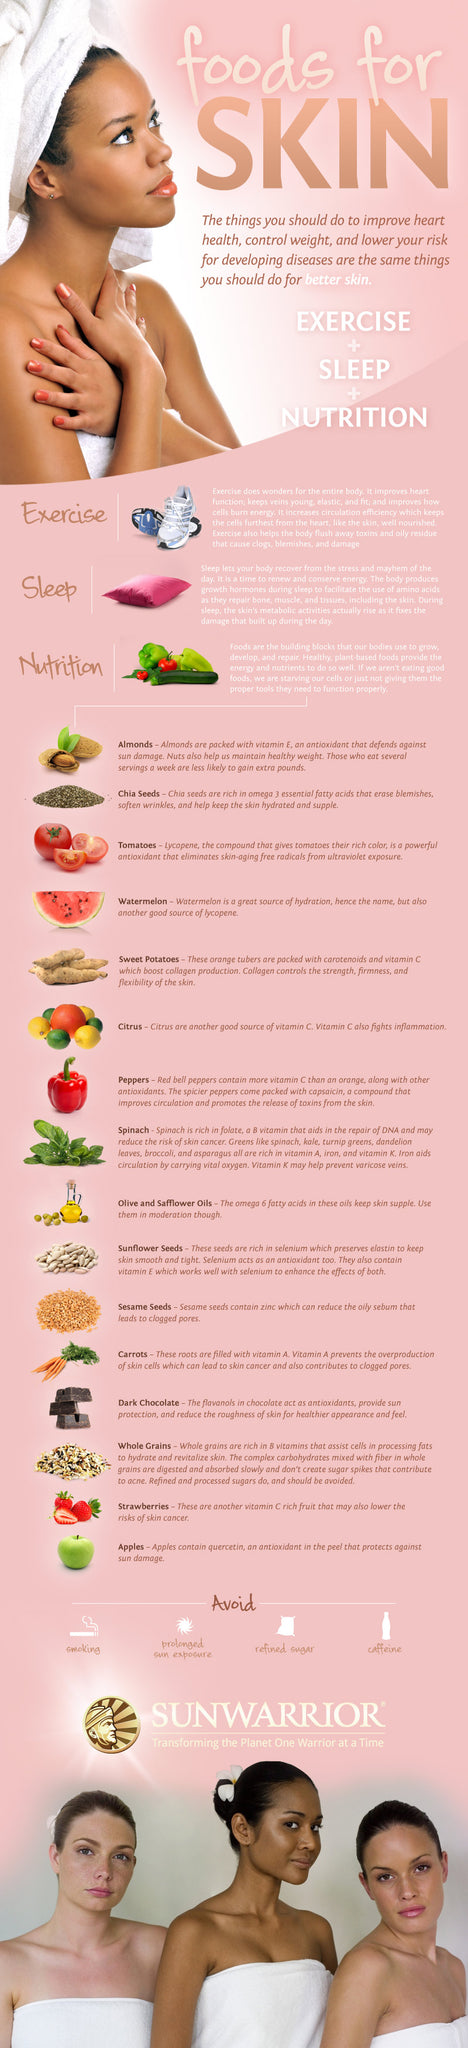 18 of the Best Foods for Glowing, Vibrant, Younger Skin